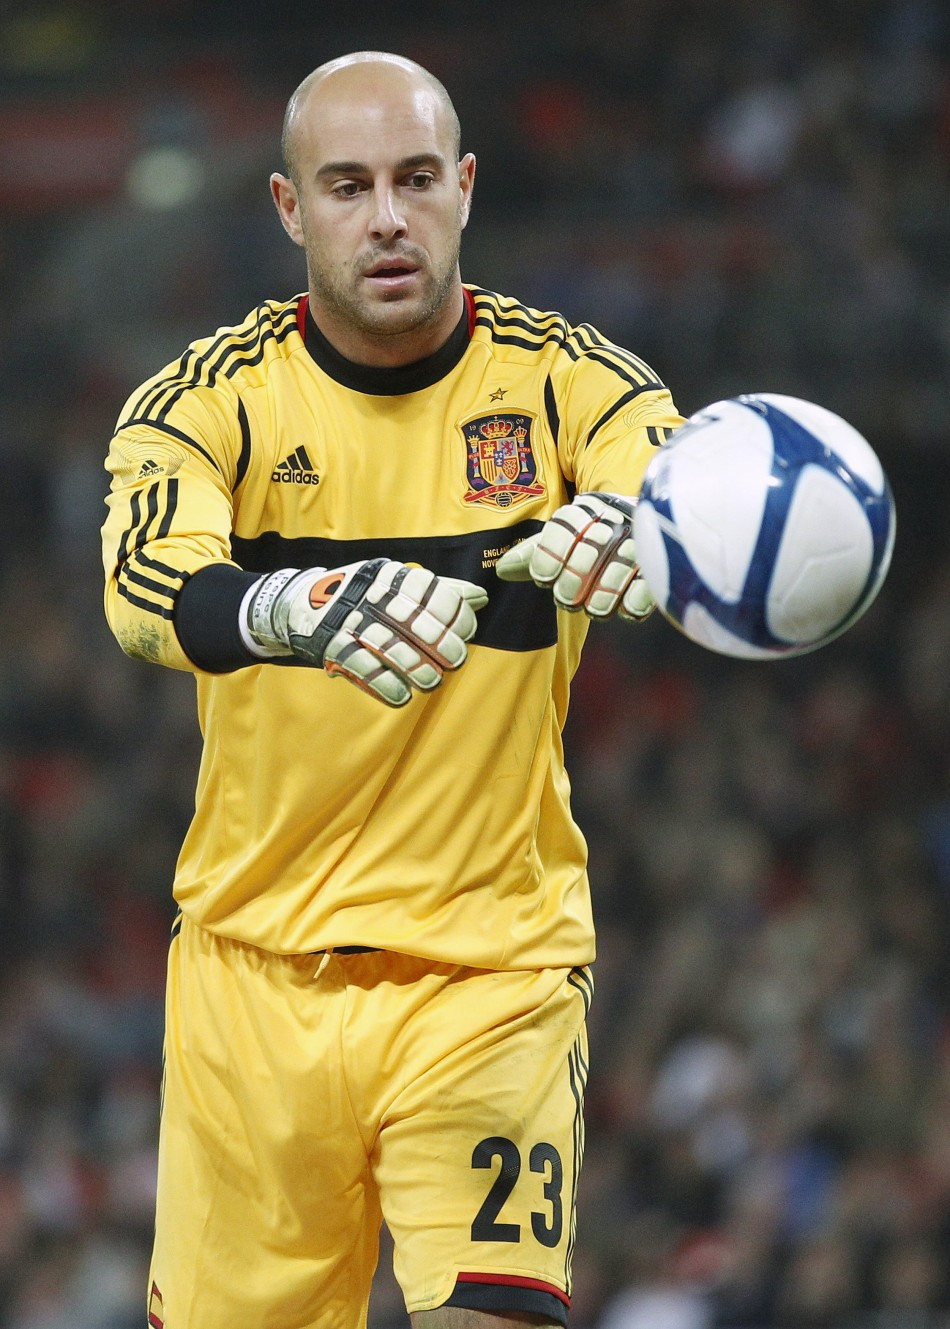 Spain's Reina catches the ball during their international friendly soccer match against England at Wembley Stadium in London